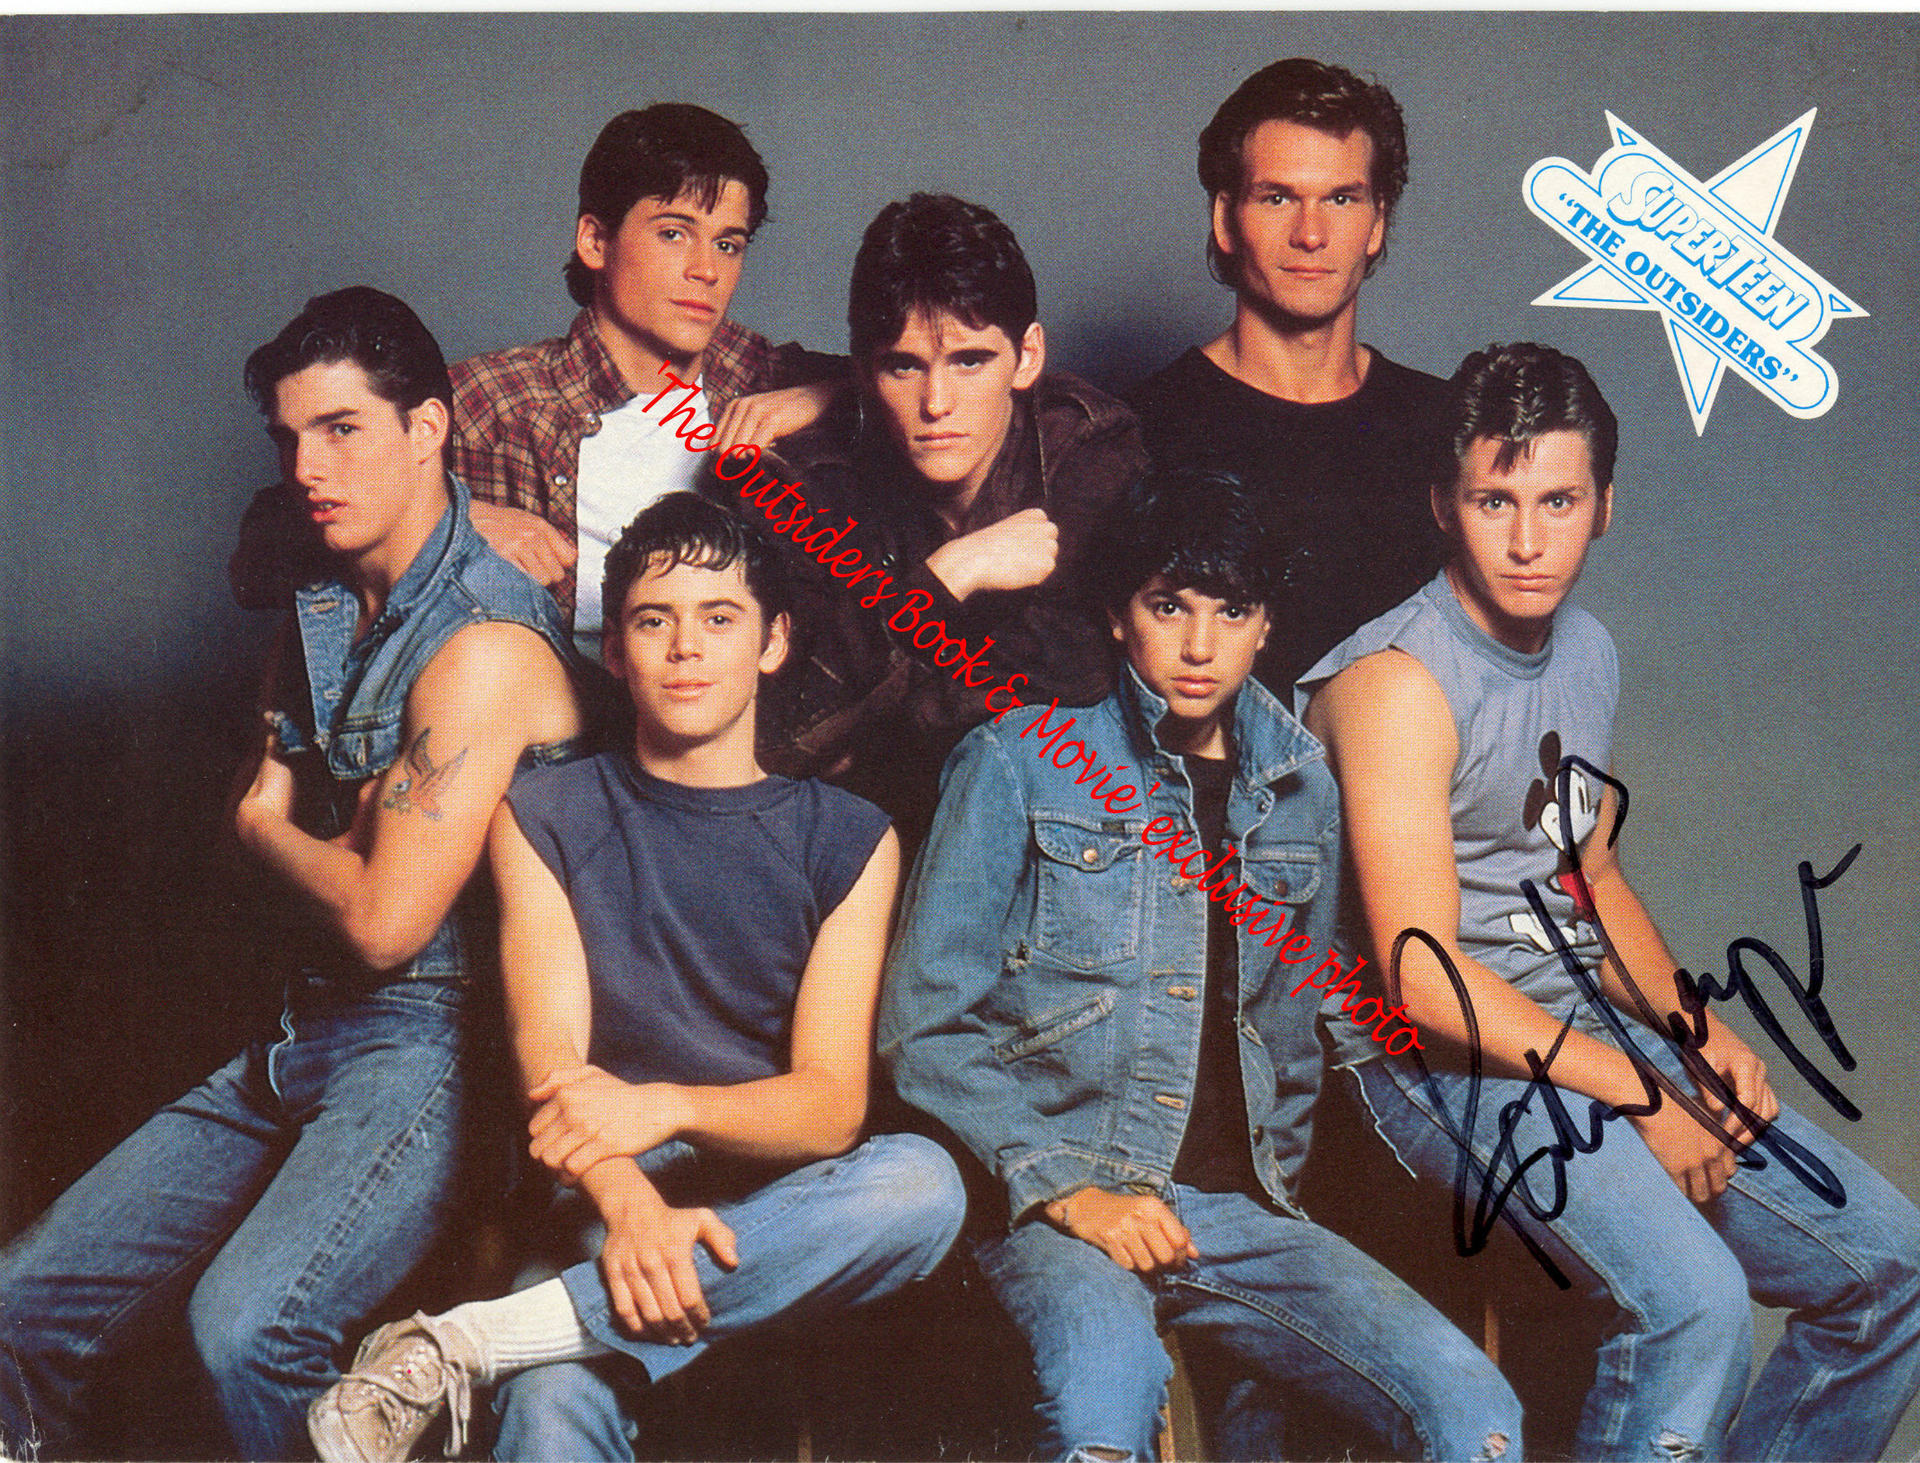 The Outsiders - The Outsiders Photo (980010) - Fanpop